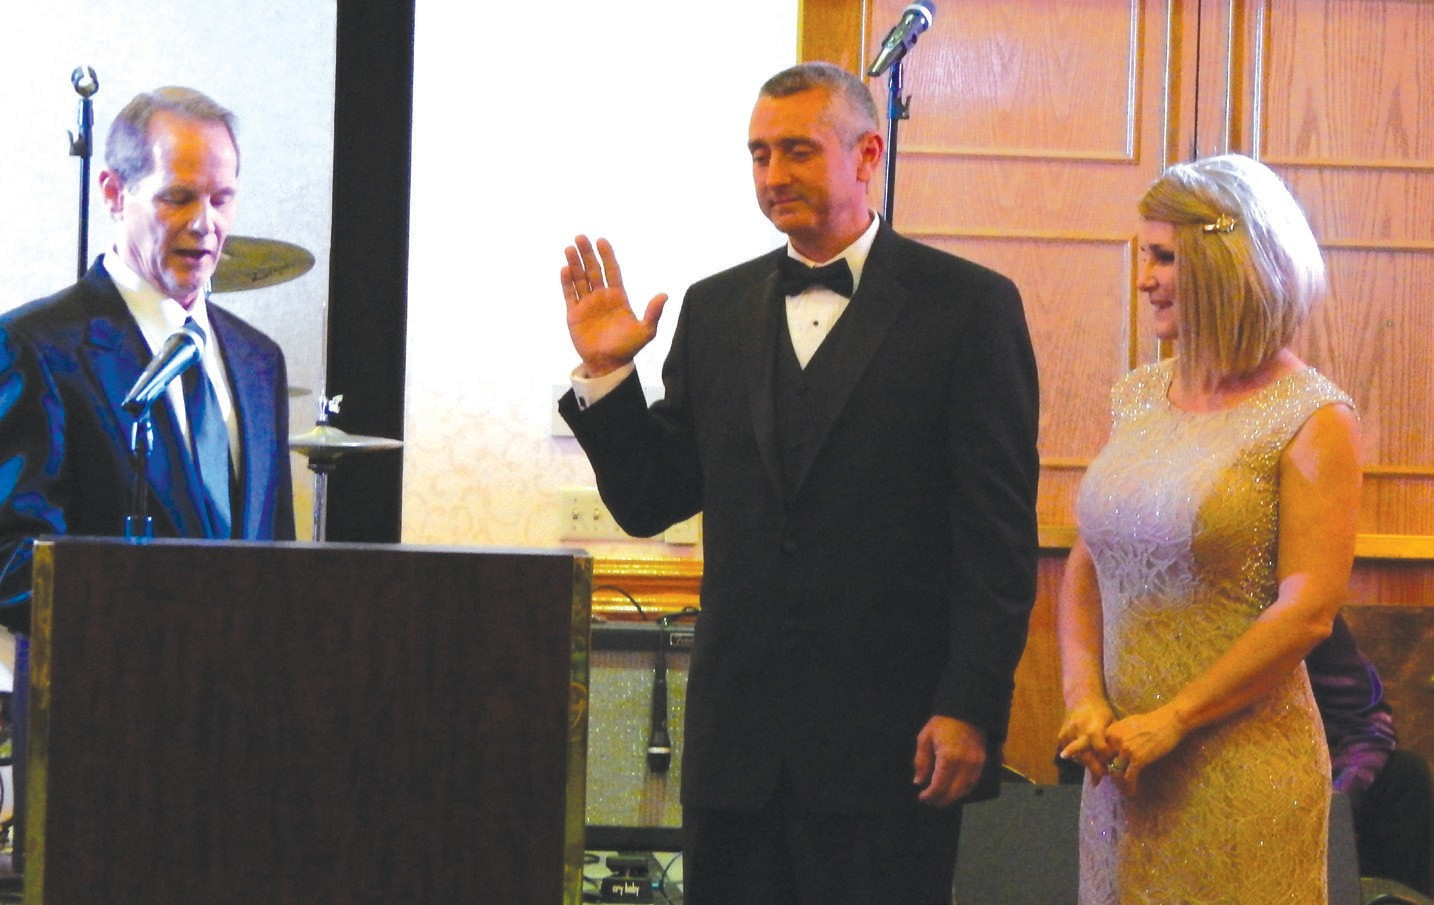 Rande Duke administers the Oath of Office to Kevin Kirsch as wife Michelle Kirsch looks on